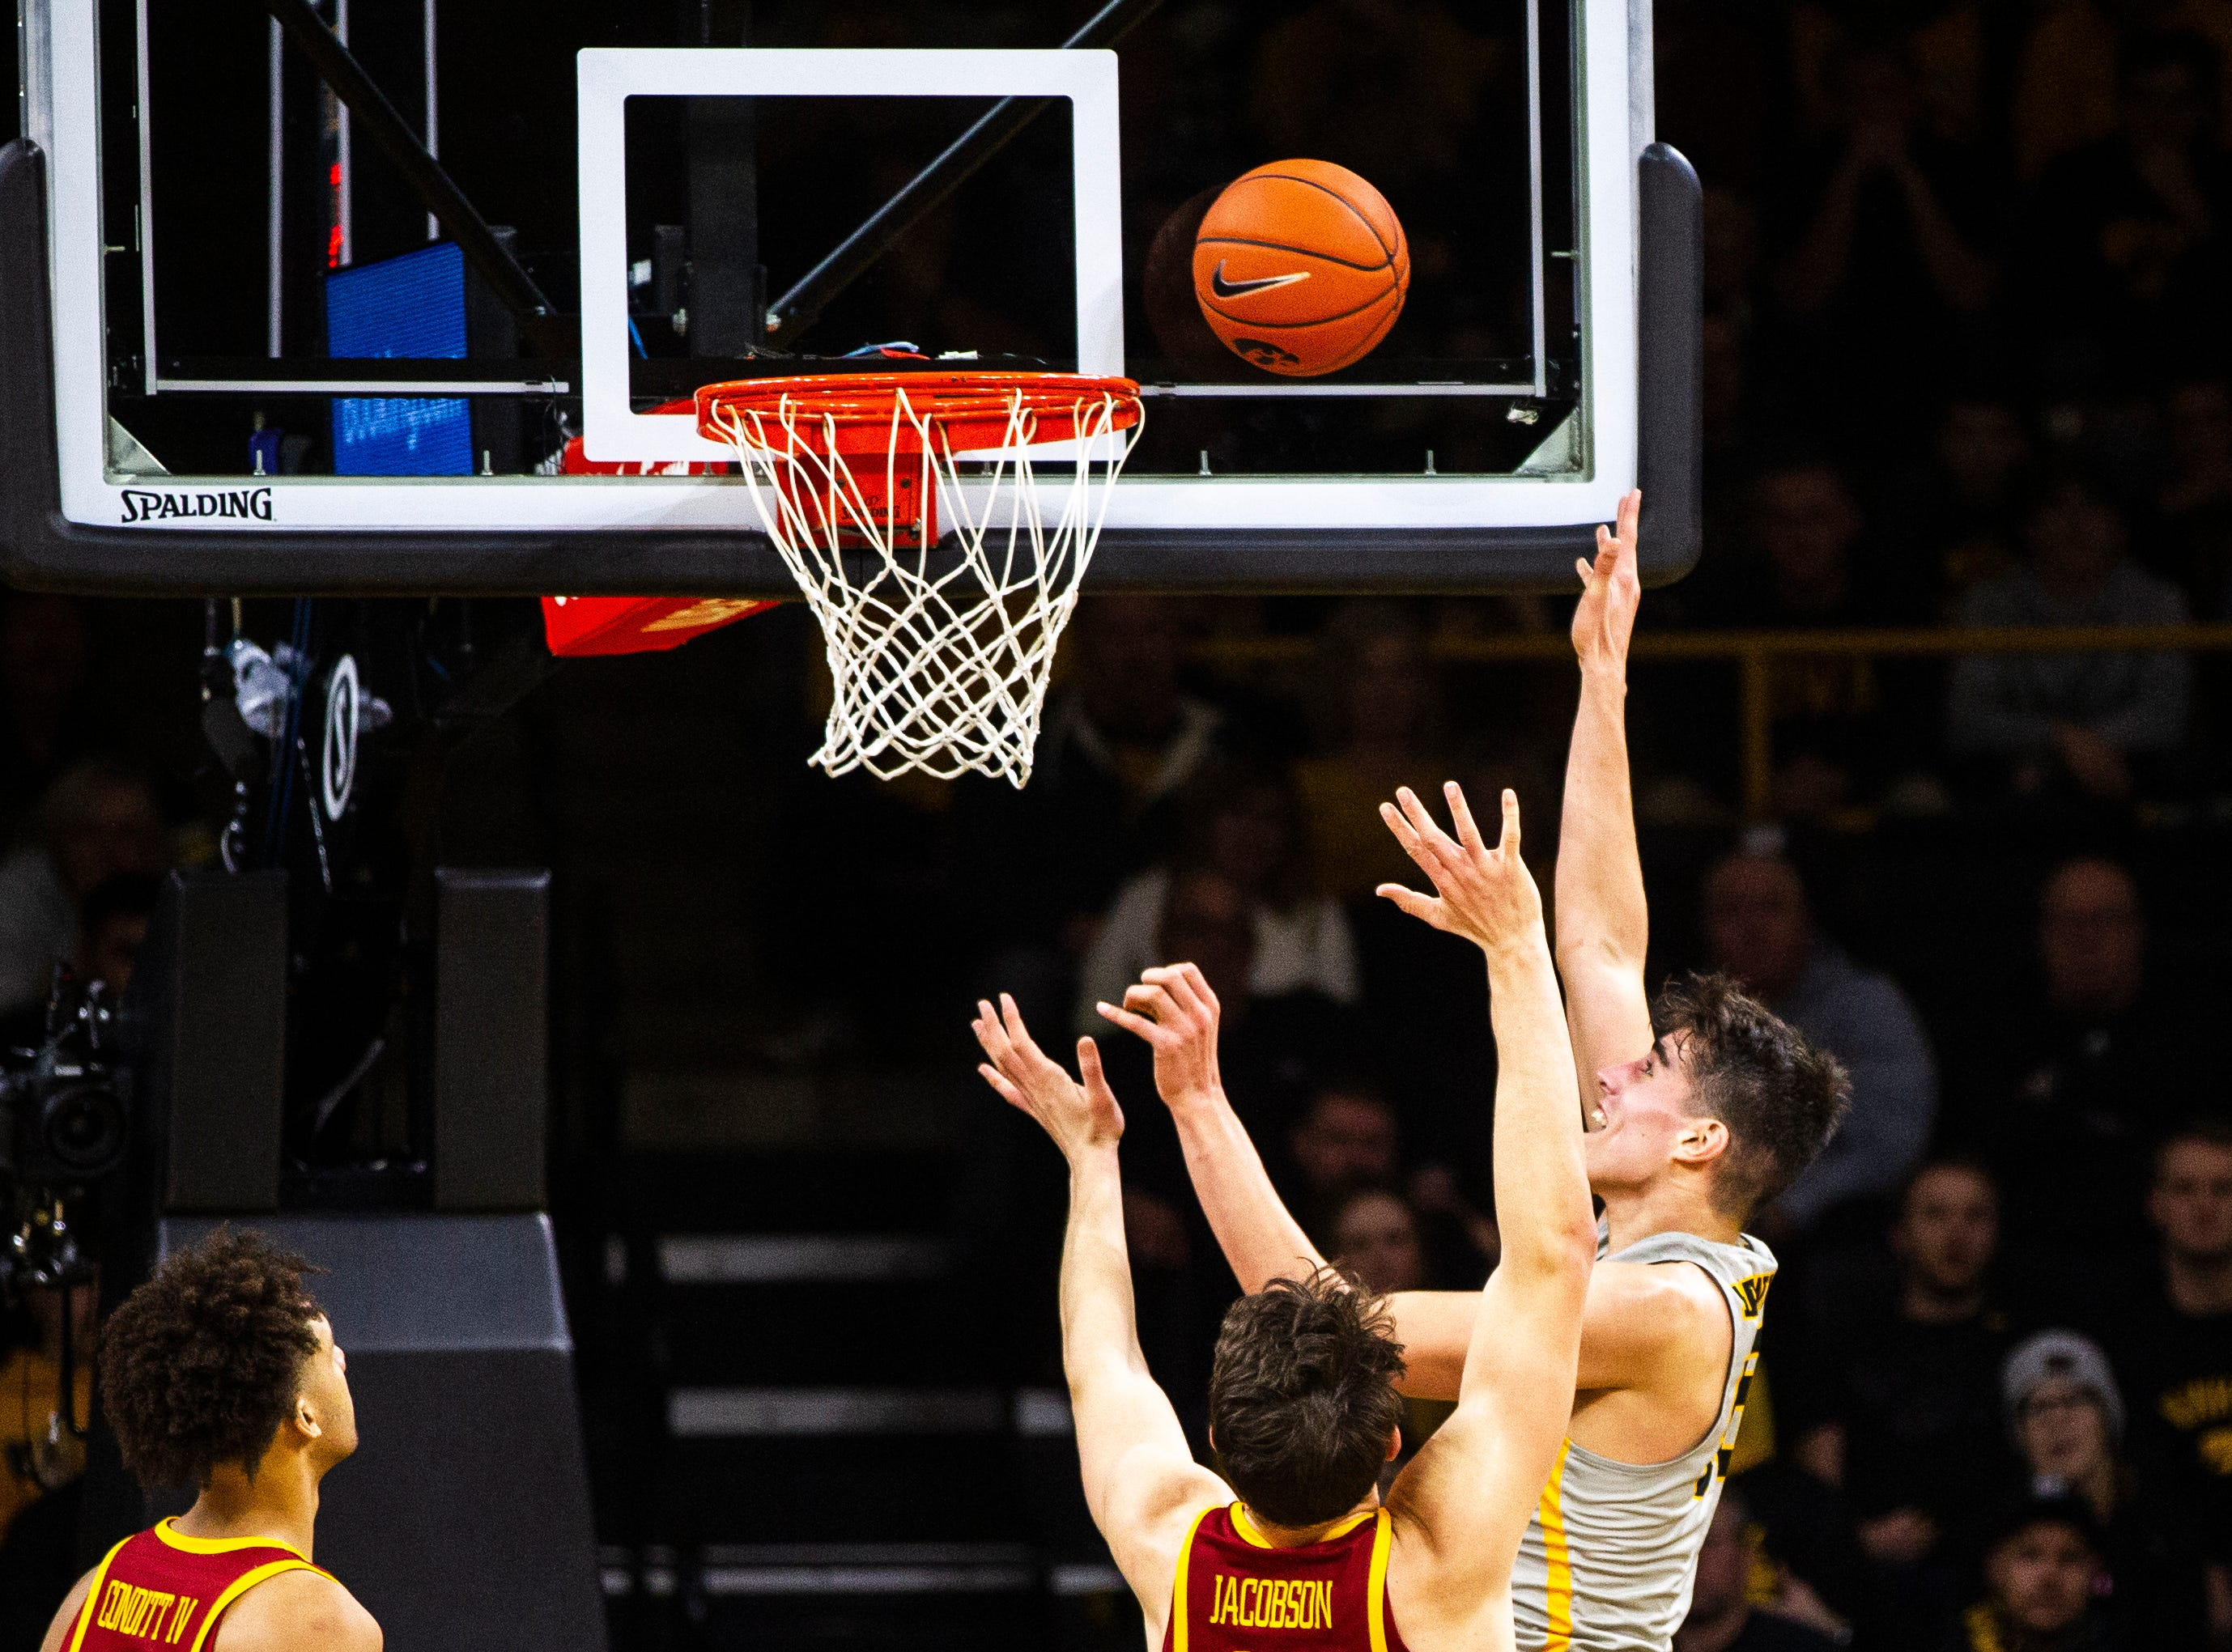 Iowa forward Luka Garza (55) attempts a basket during a NCAA Cy-Hawk series men's basketball game on Thursday, Dec. 6, 2018, at Carver-Hawkeye Arena in Iowa City.